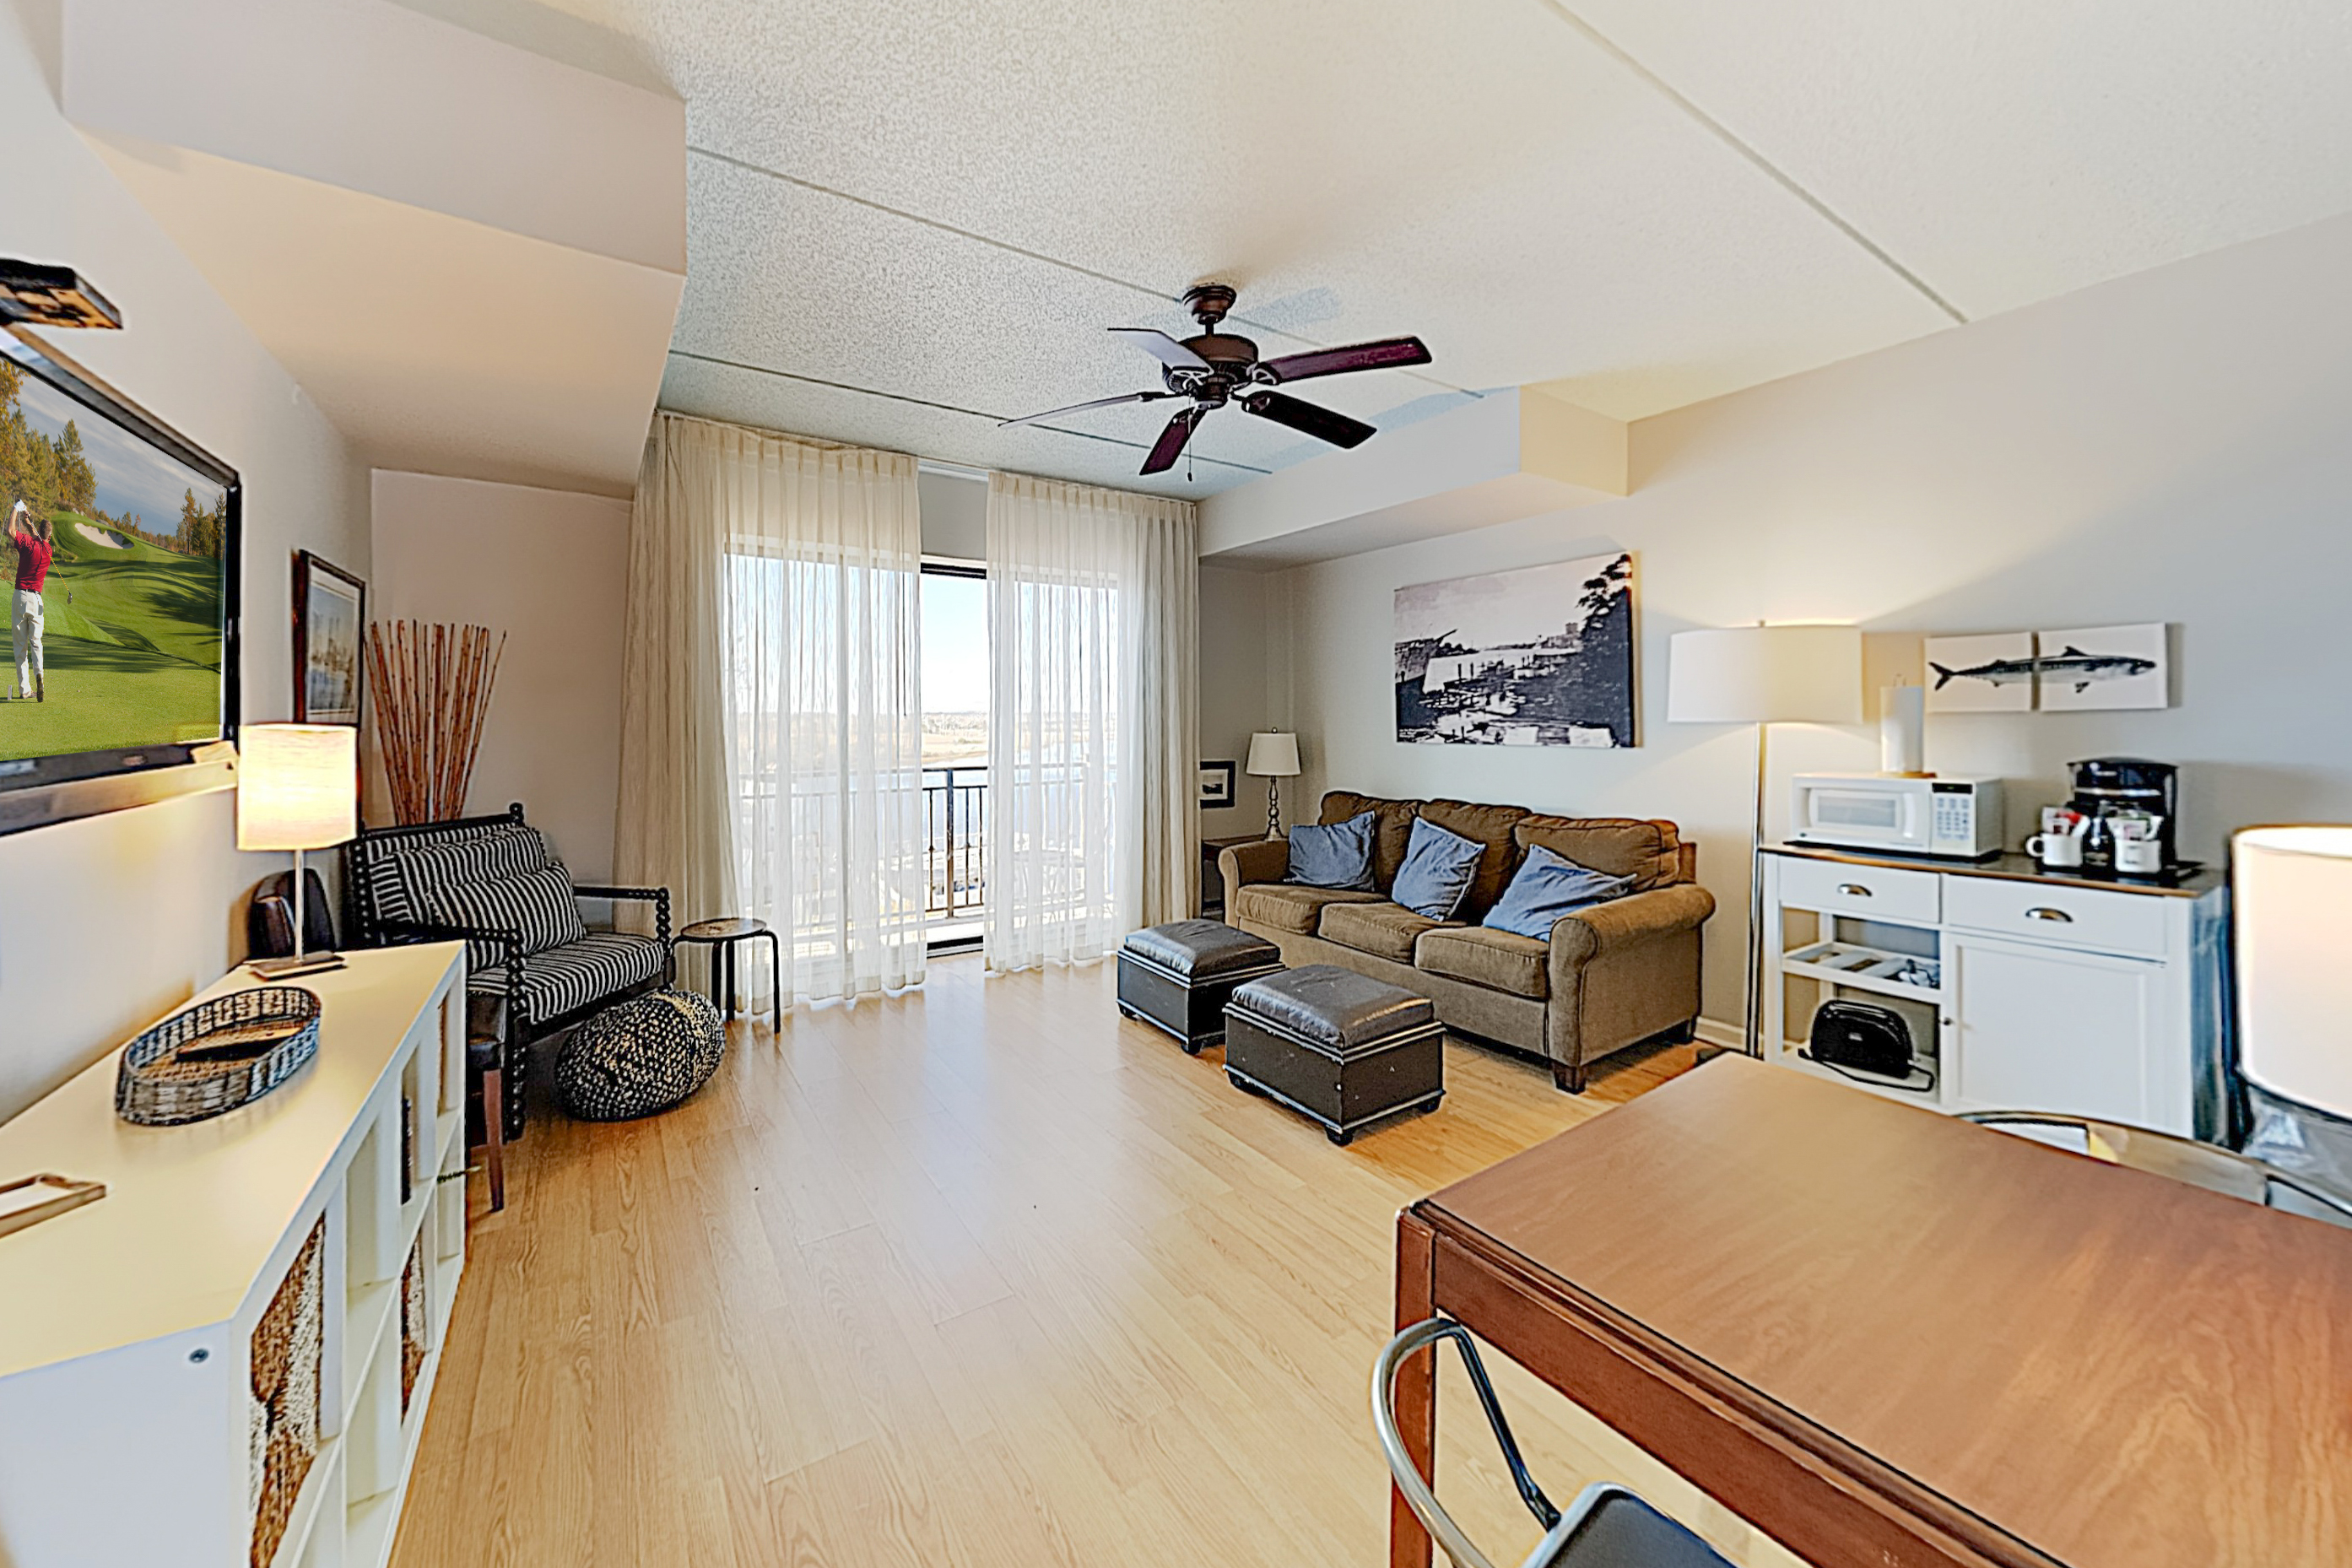 Wilmington NC Vacation Rental Unit 1: This